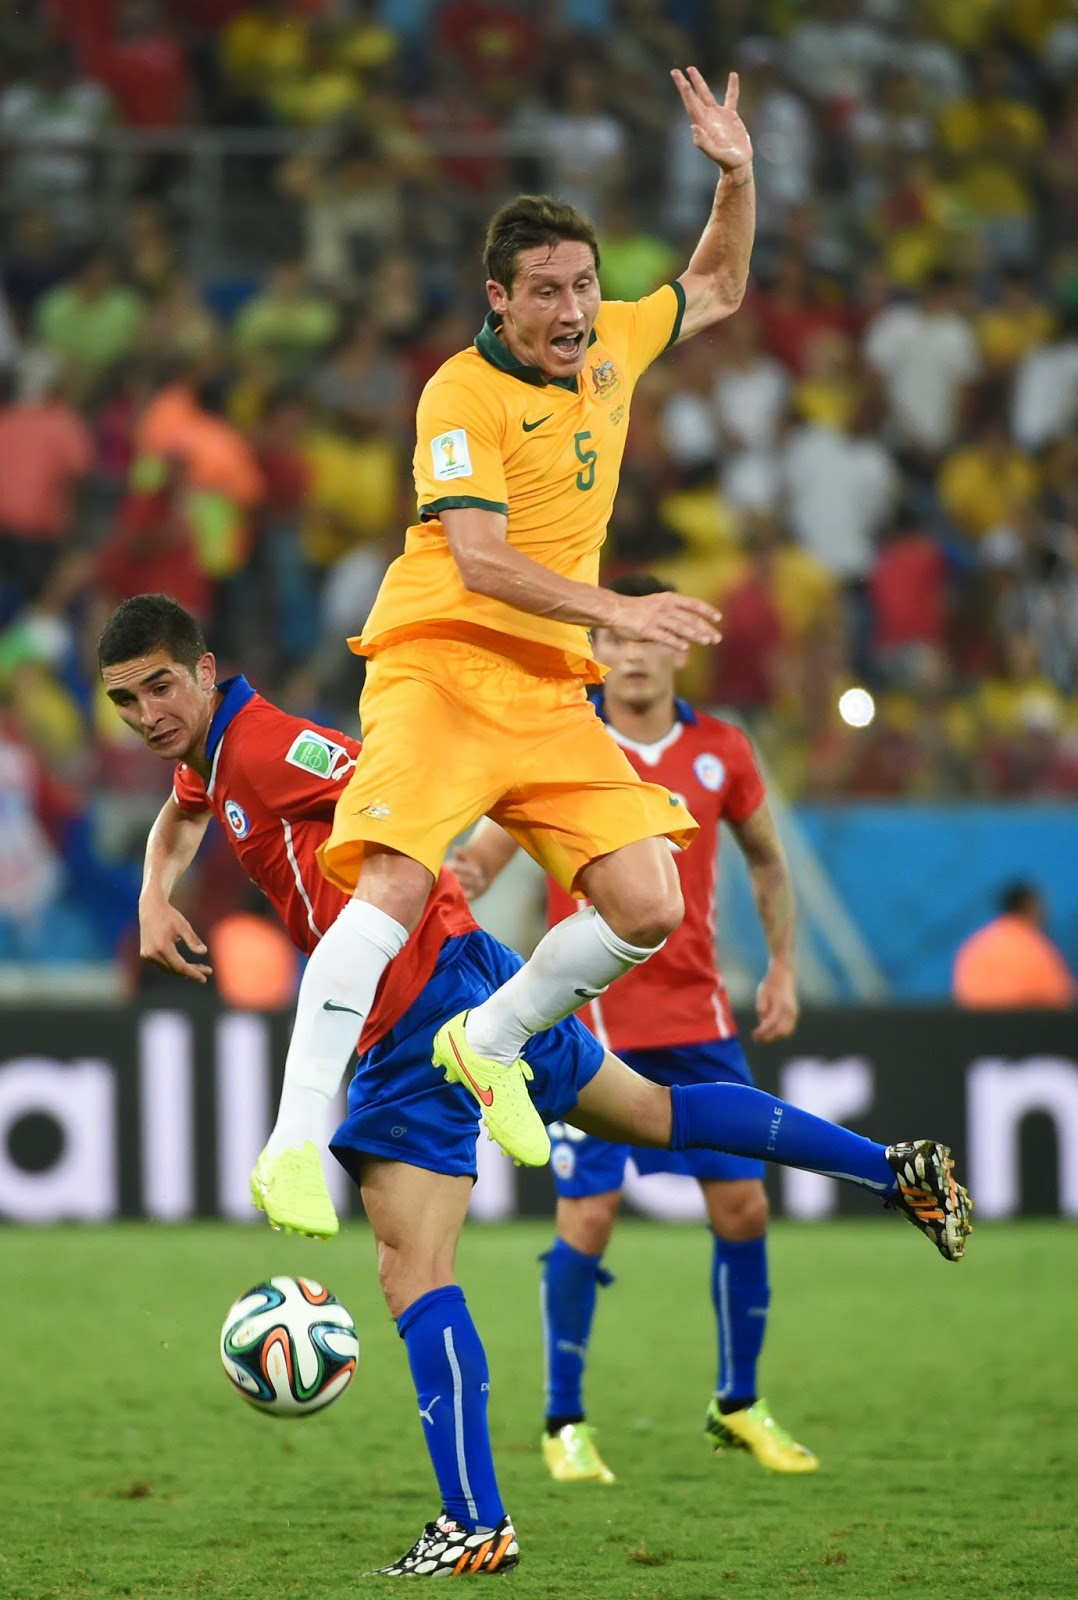 Australia Squad, Brazil, Chile Squad, Chile vs Australia, FIFA World Cup, FIFA World Cup 2014, Football, Football Fans, Sports, Group B, Tim Cahill, Claudio Bravo, Gary Medel, Mathew Leckie